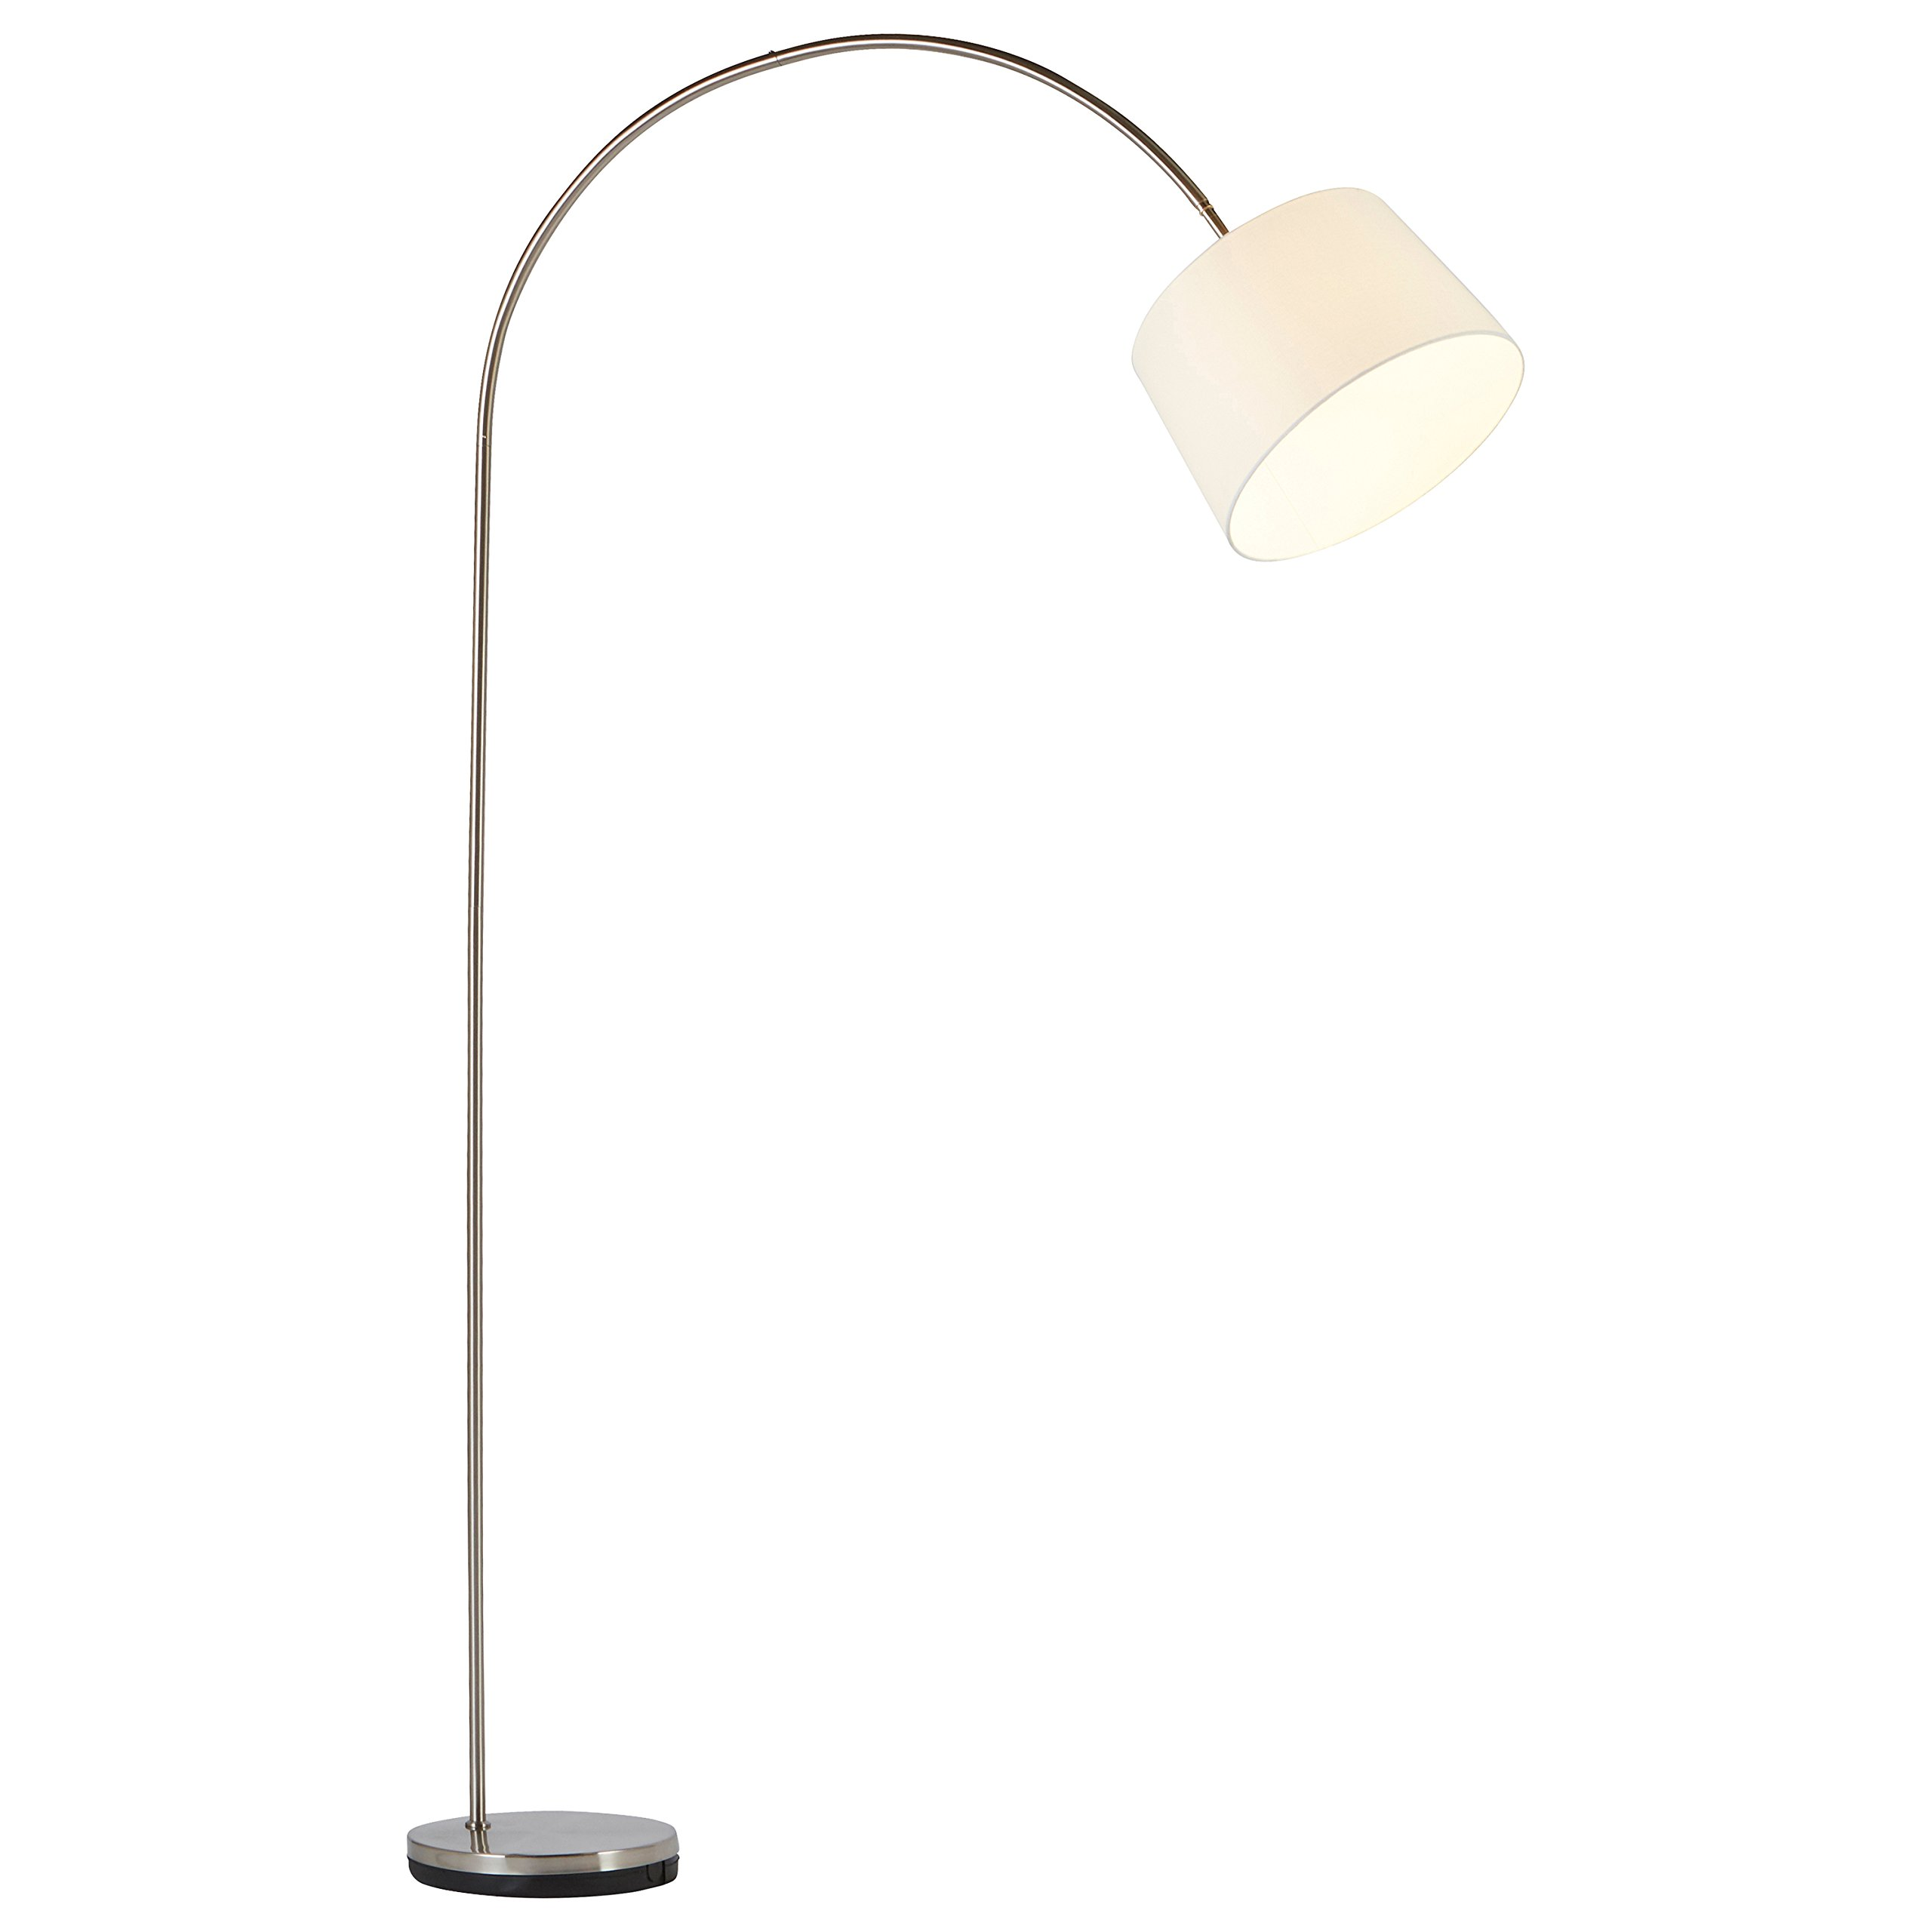 Stone & Beam Lily Modern Arc Floor Lamp, 83''H, With Bulb, White Shade by Stone & Beam